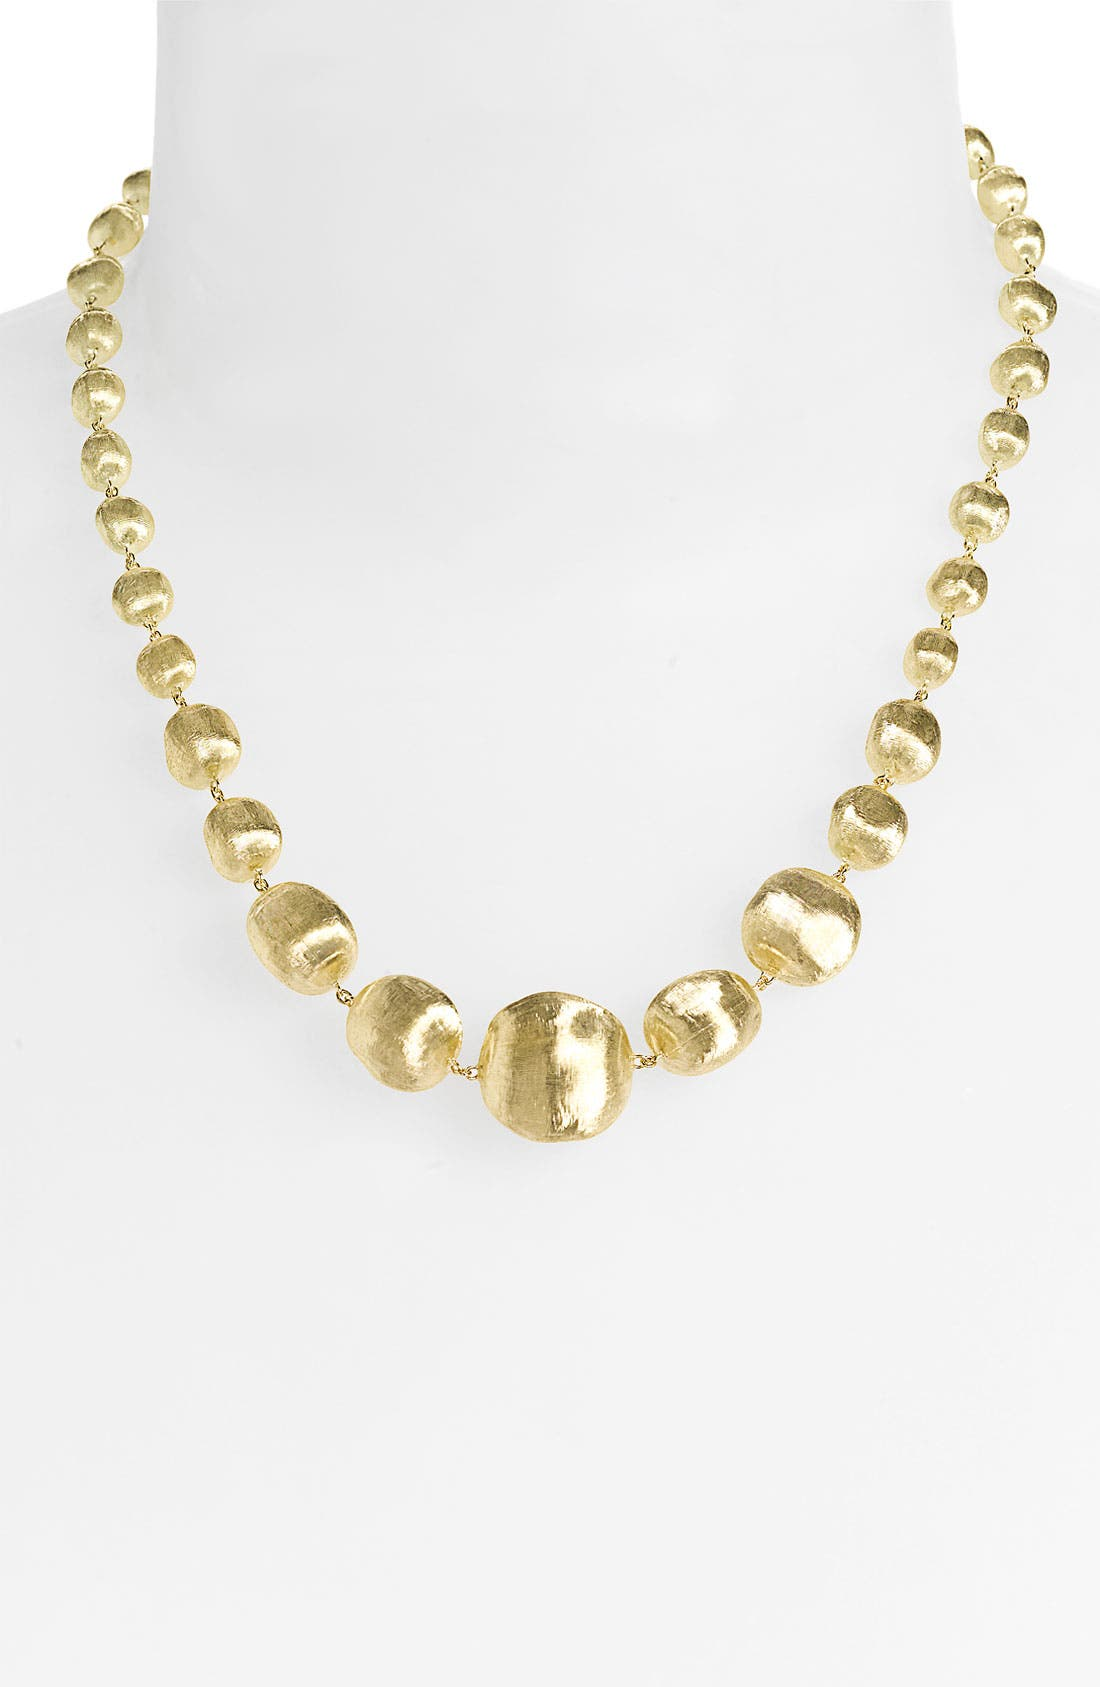 Alternate Image 1 Selected - Marco Bicego 'Africa Gold' Graduated Necklace